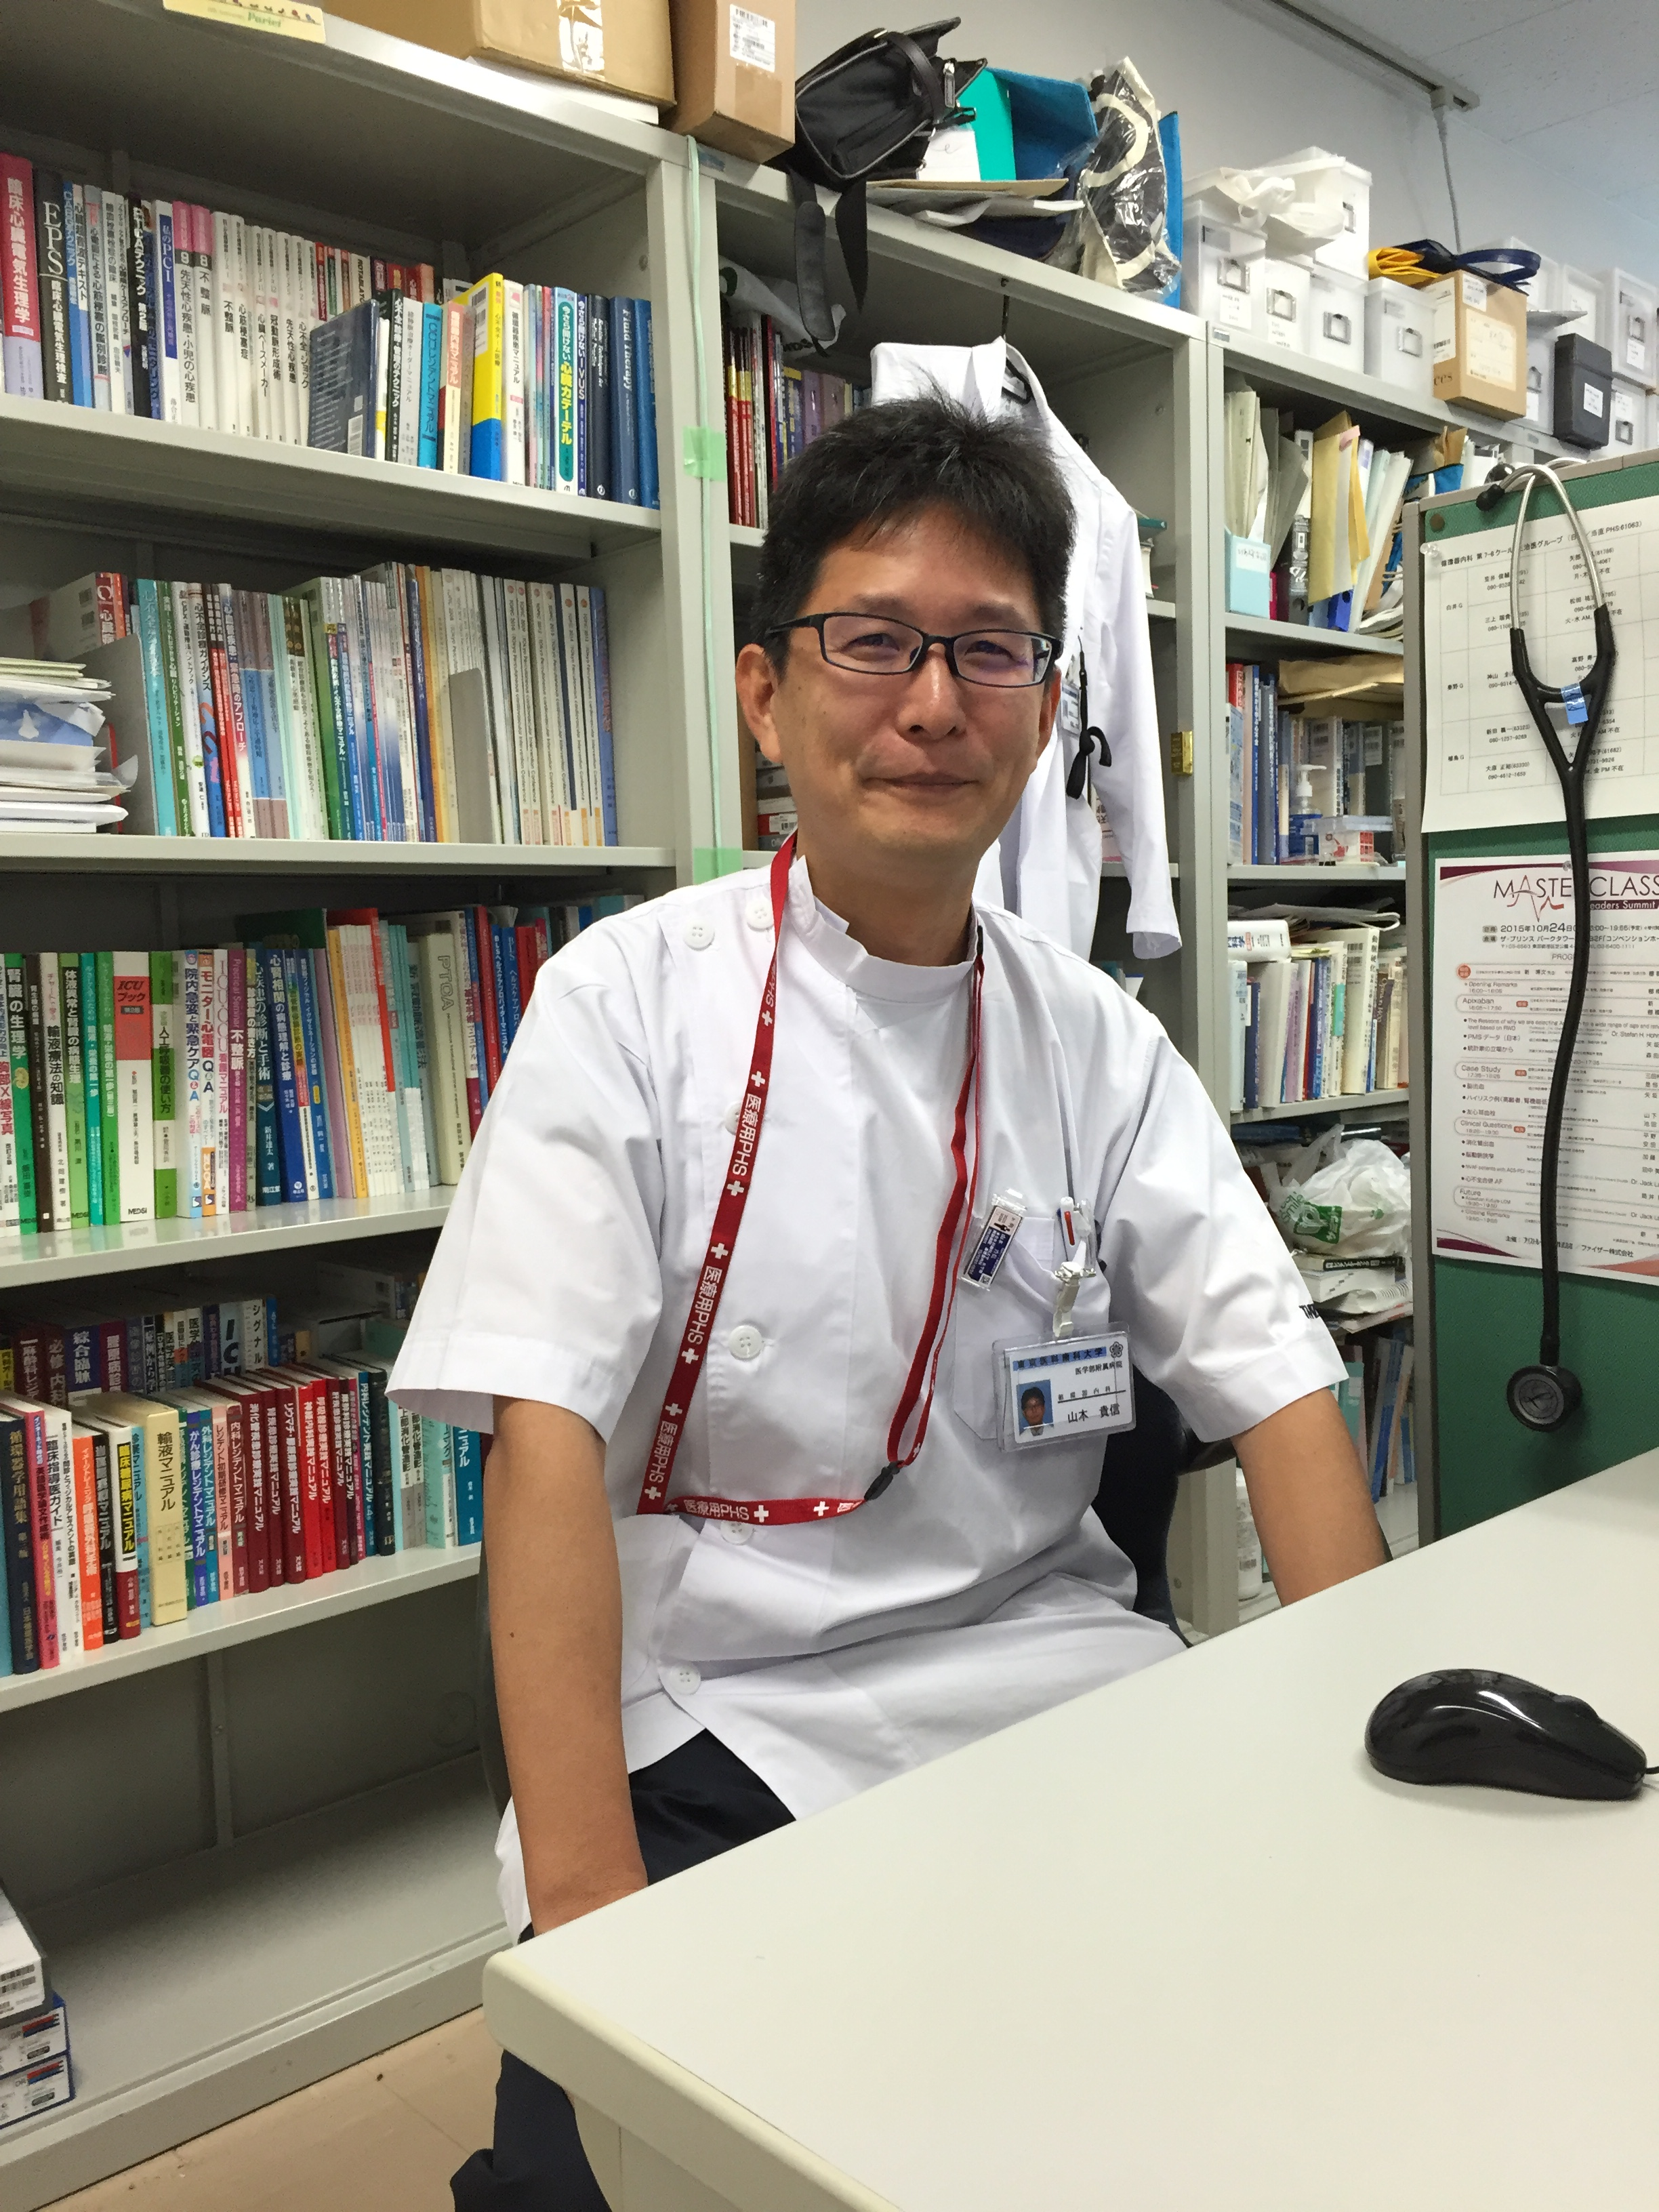 Takanobu Yamamoto, MD, PhD   Email Taka   2015-Present: Assistant Professor, Tokyo Medical and Dental Univeristy 2013-2015 Cardiologist-in-Chief, Shuuwa General Hospital, Saitama, Japan 2010-2013 Postdoctoral Fellow, UMDNJ 2005-2010 PhD, Tokyo Medical and Dental University 1996-2005 Resident and Fellow, Toranomon Hospital, Japan 1990-1996 MD, Tokyo Medical and Dental University, Japan  Research Interests: Myocardial metabolism